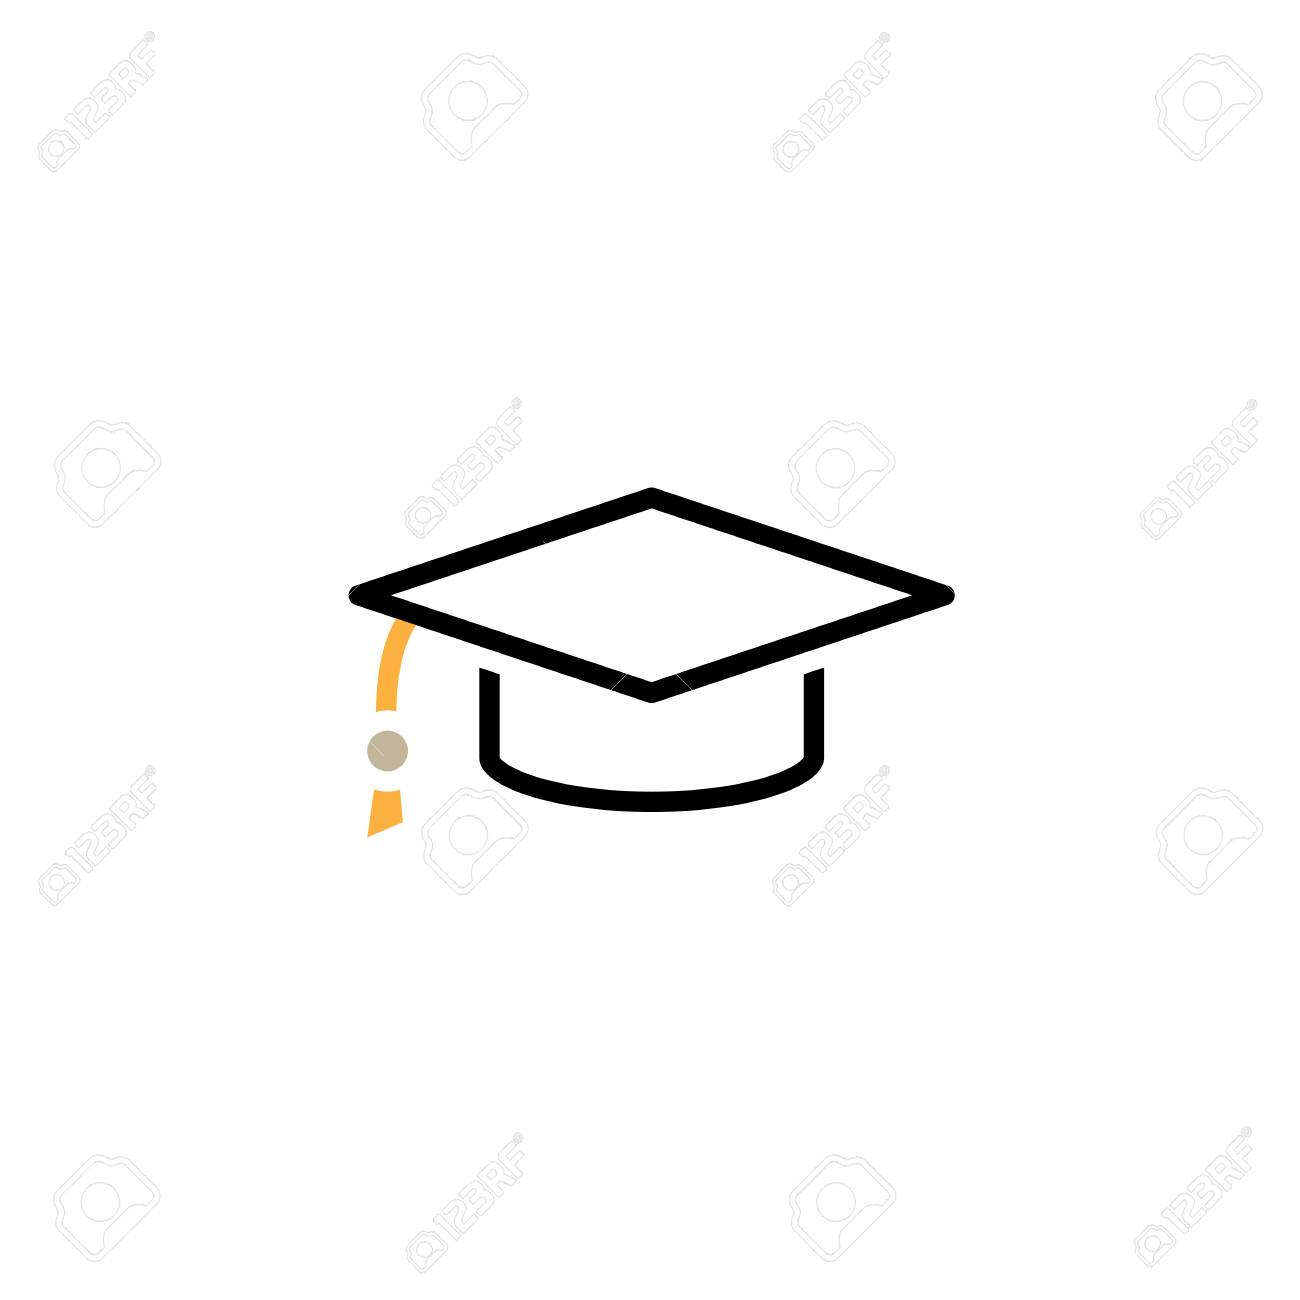 graduation cap line icon, outline vector logo illustration, linear pictogram isolated on white